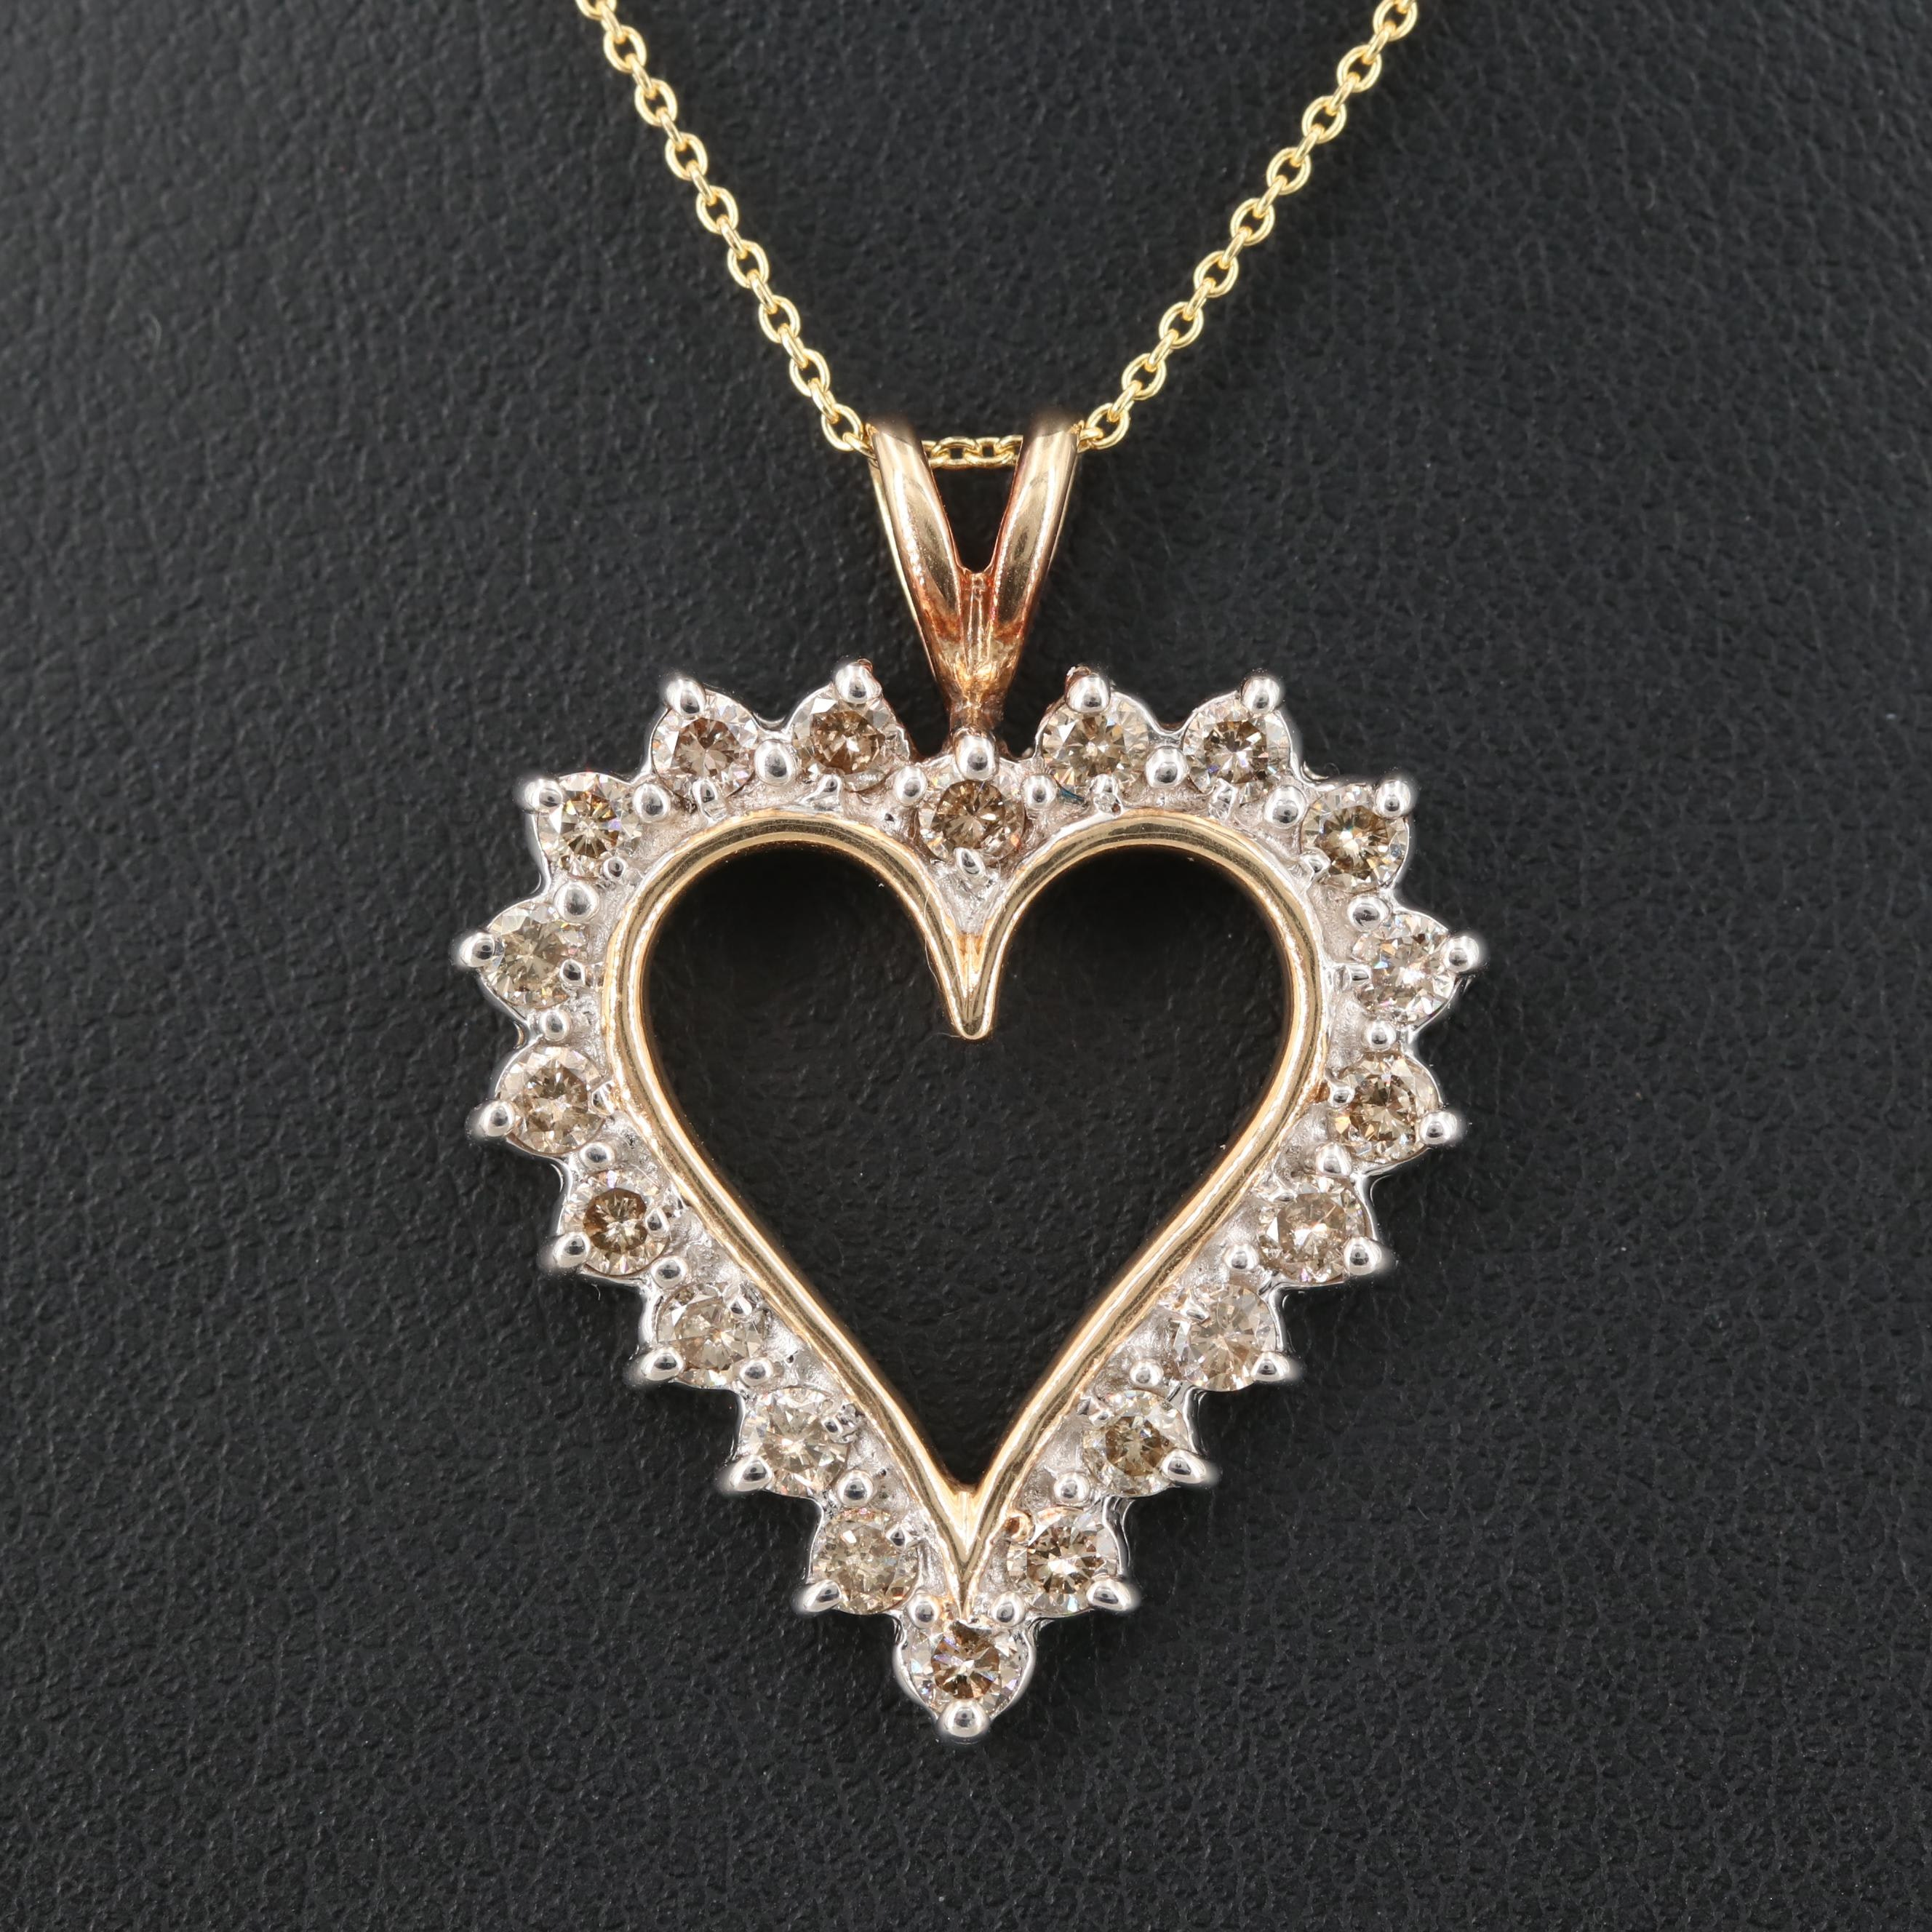 10K Yellow Gold 1.00 CTW Diamond Heart Pendant with 14K Chain Necklace